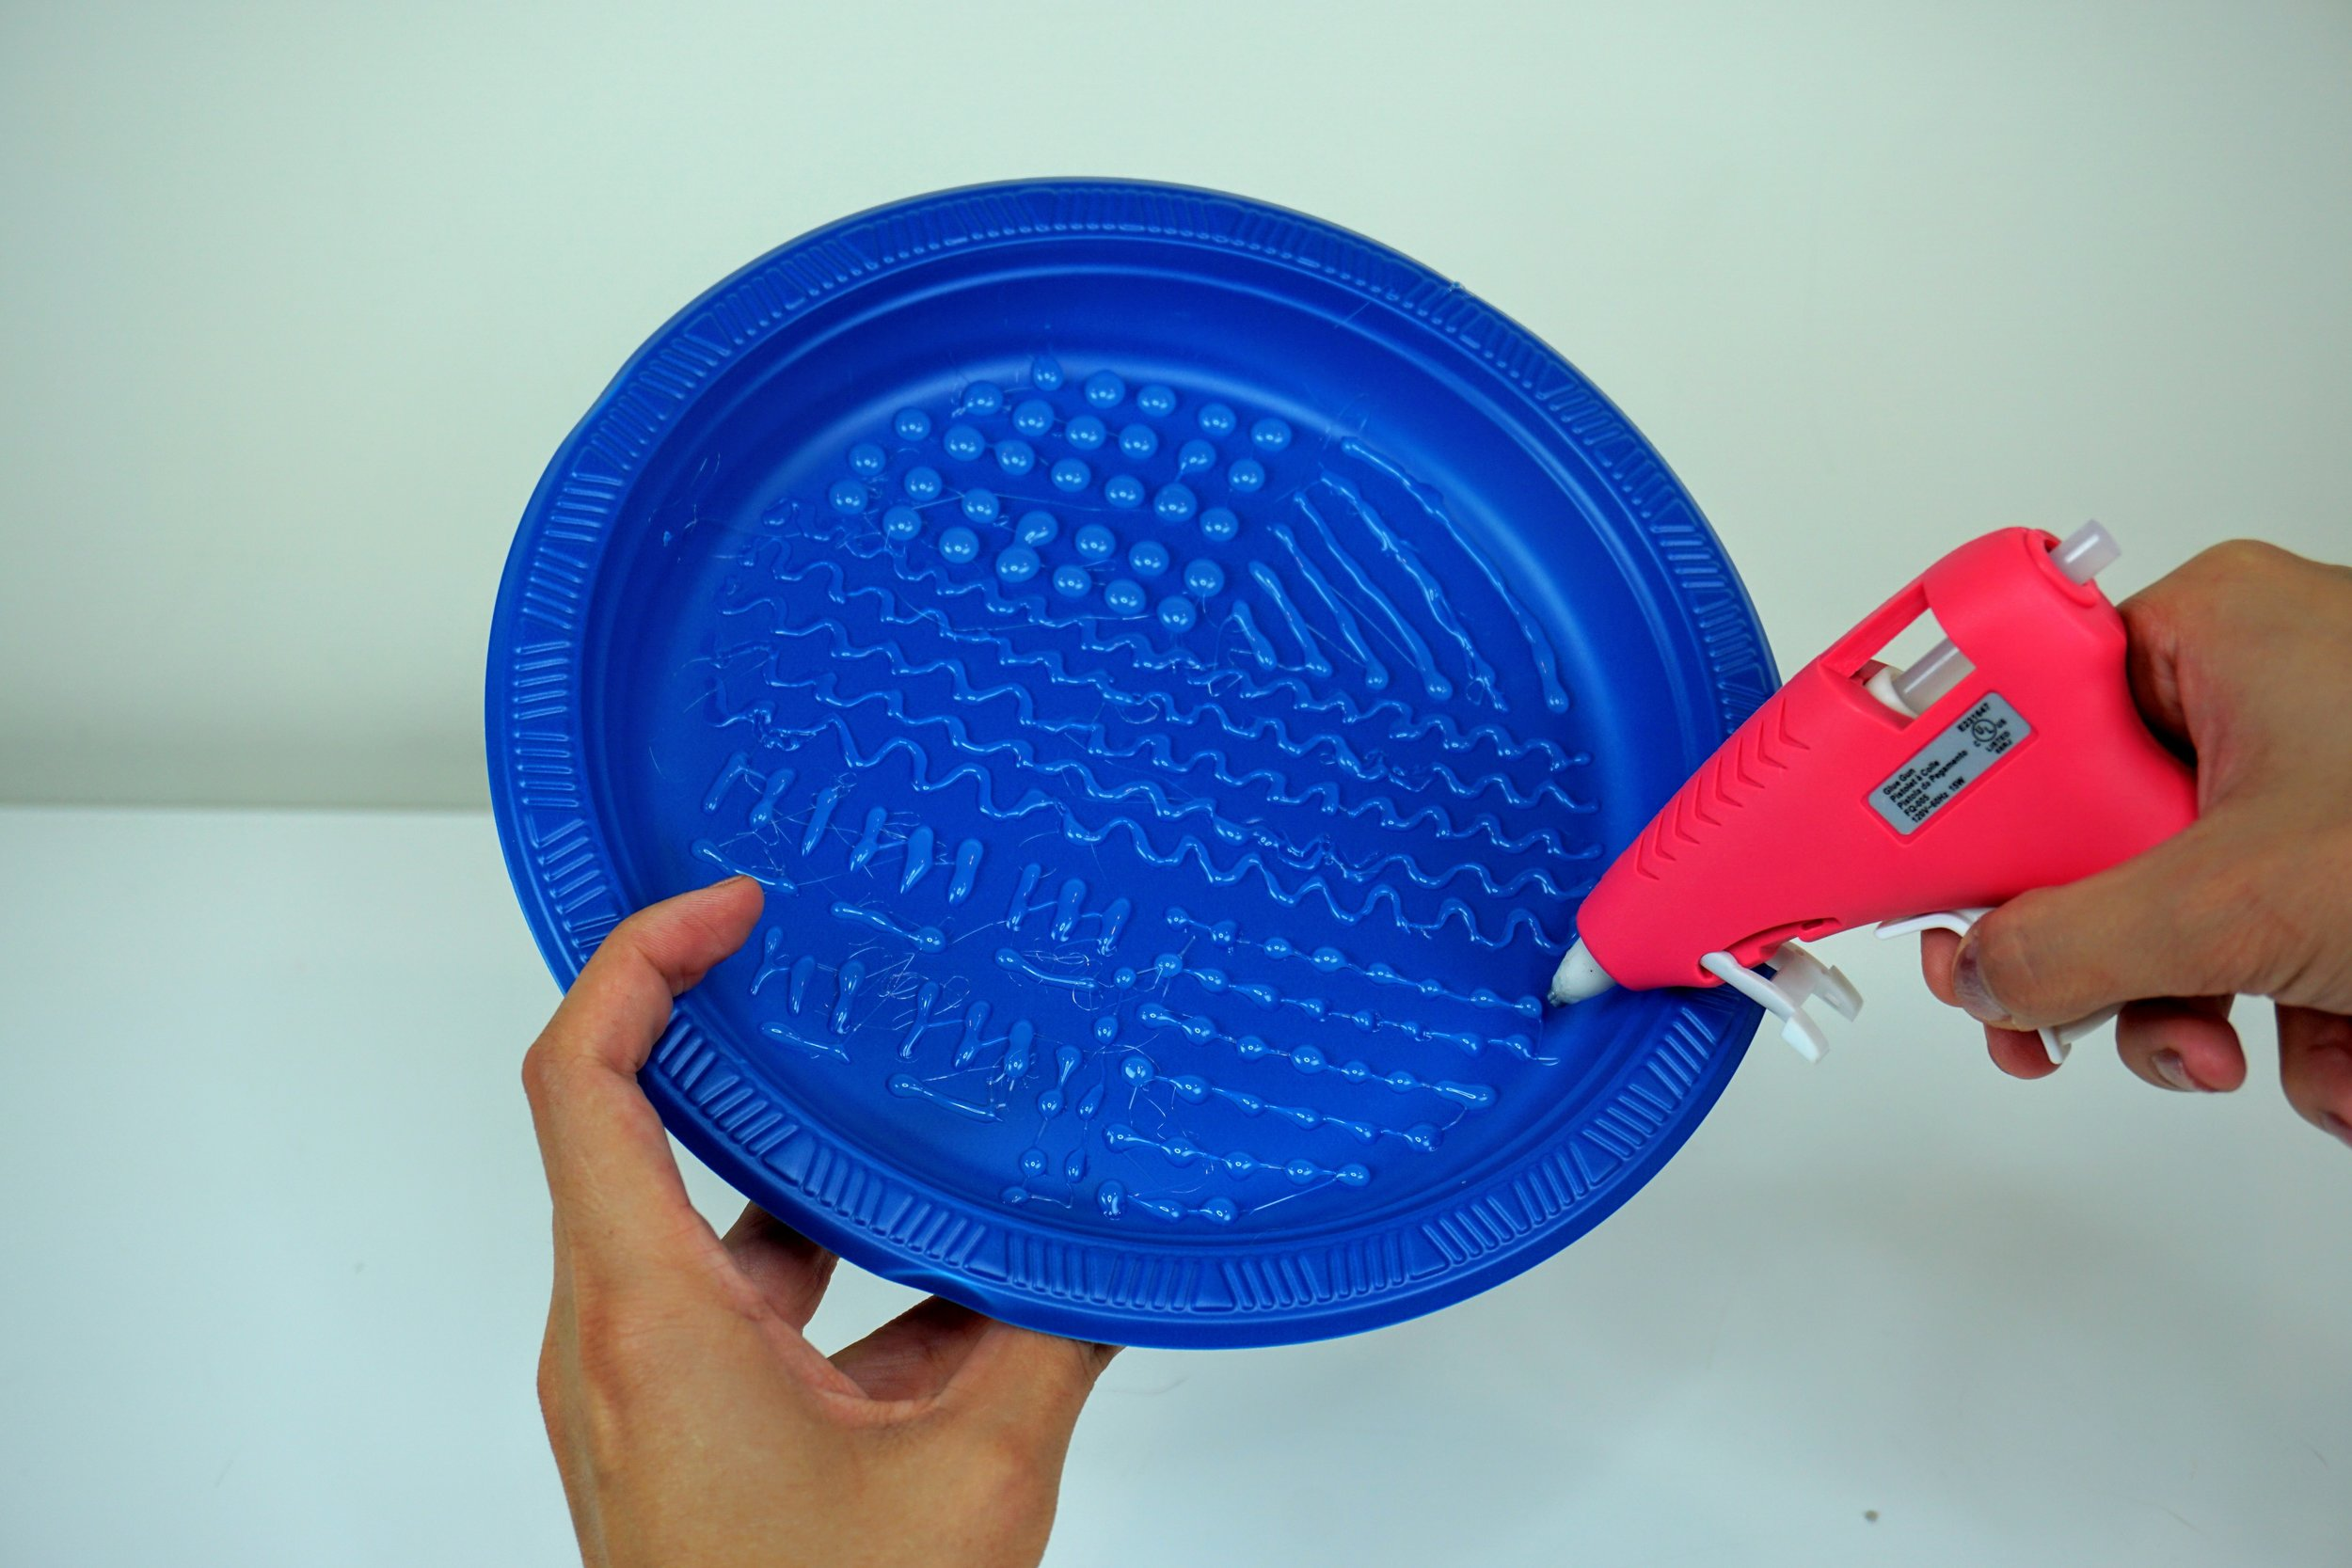 Making squiggly and vertical lines, dots on the blue plastic plate by a glue gun to make a diy brush cleaning mat.